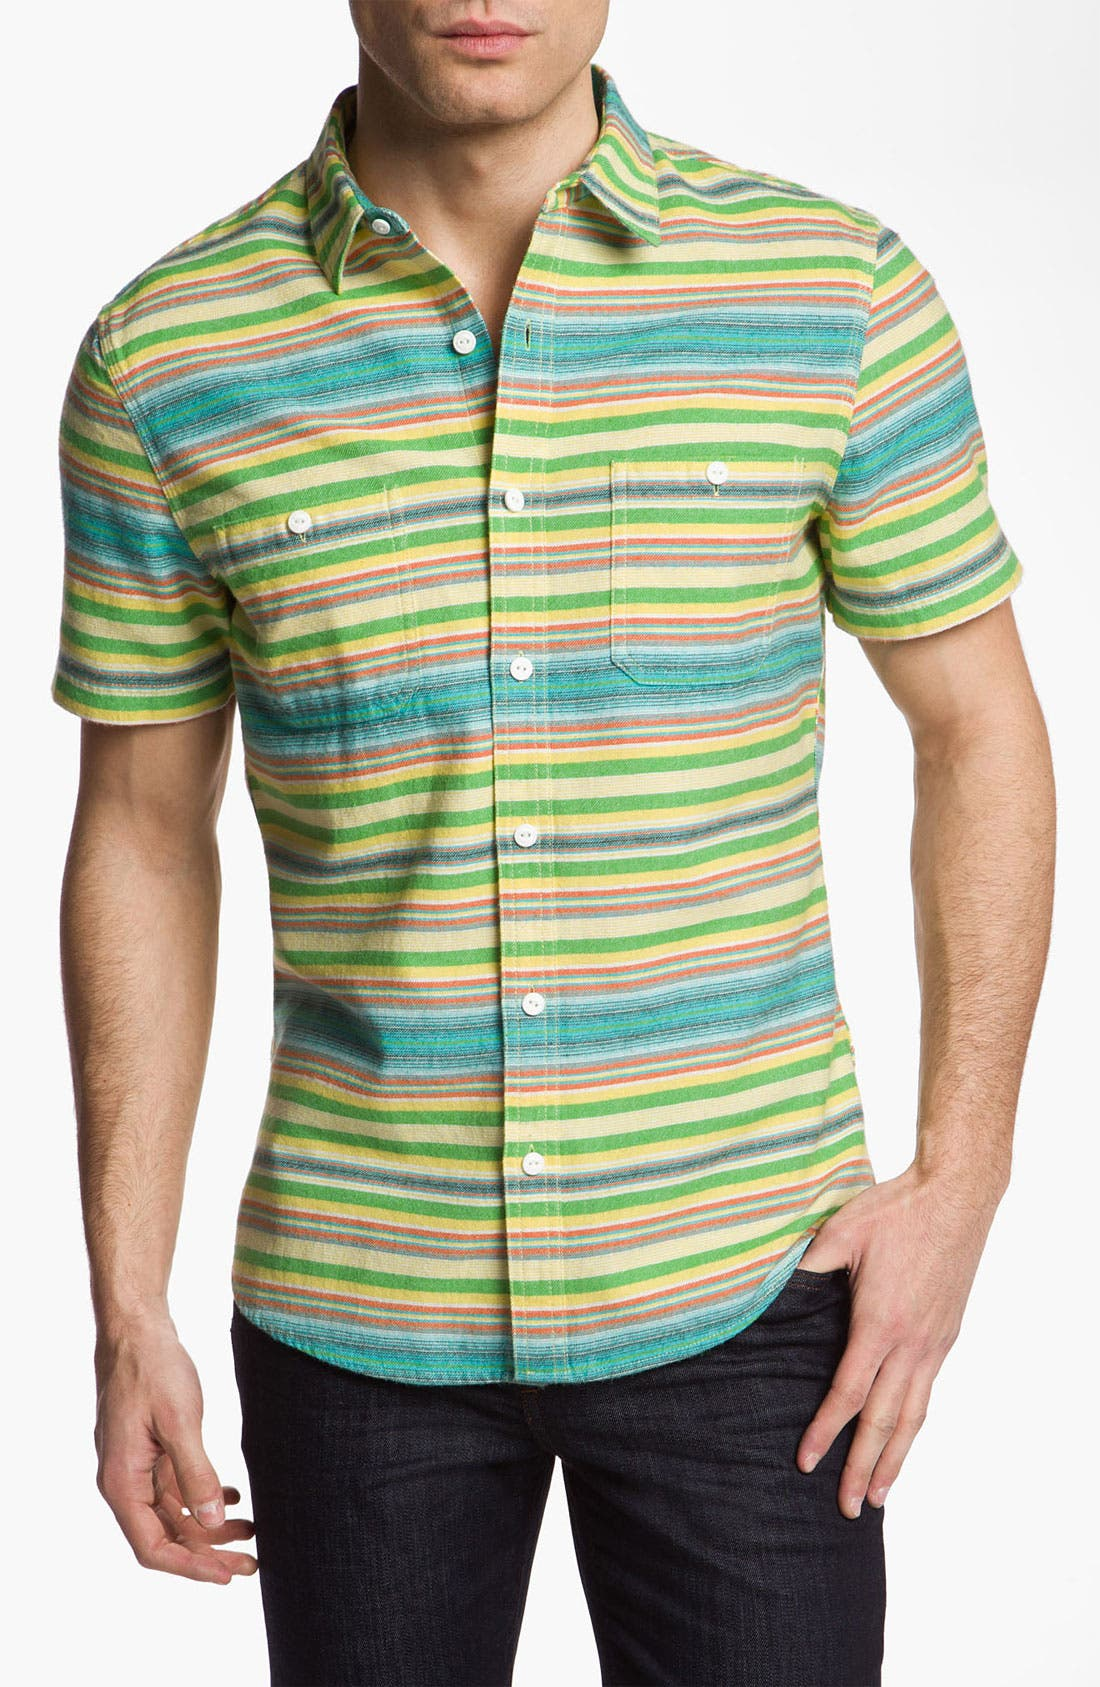 Alternate Image 1 Selected - Public Opinion 'Blanket Stripe' Work Shirt